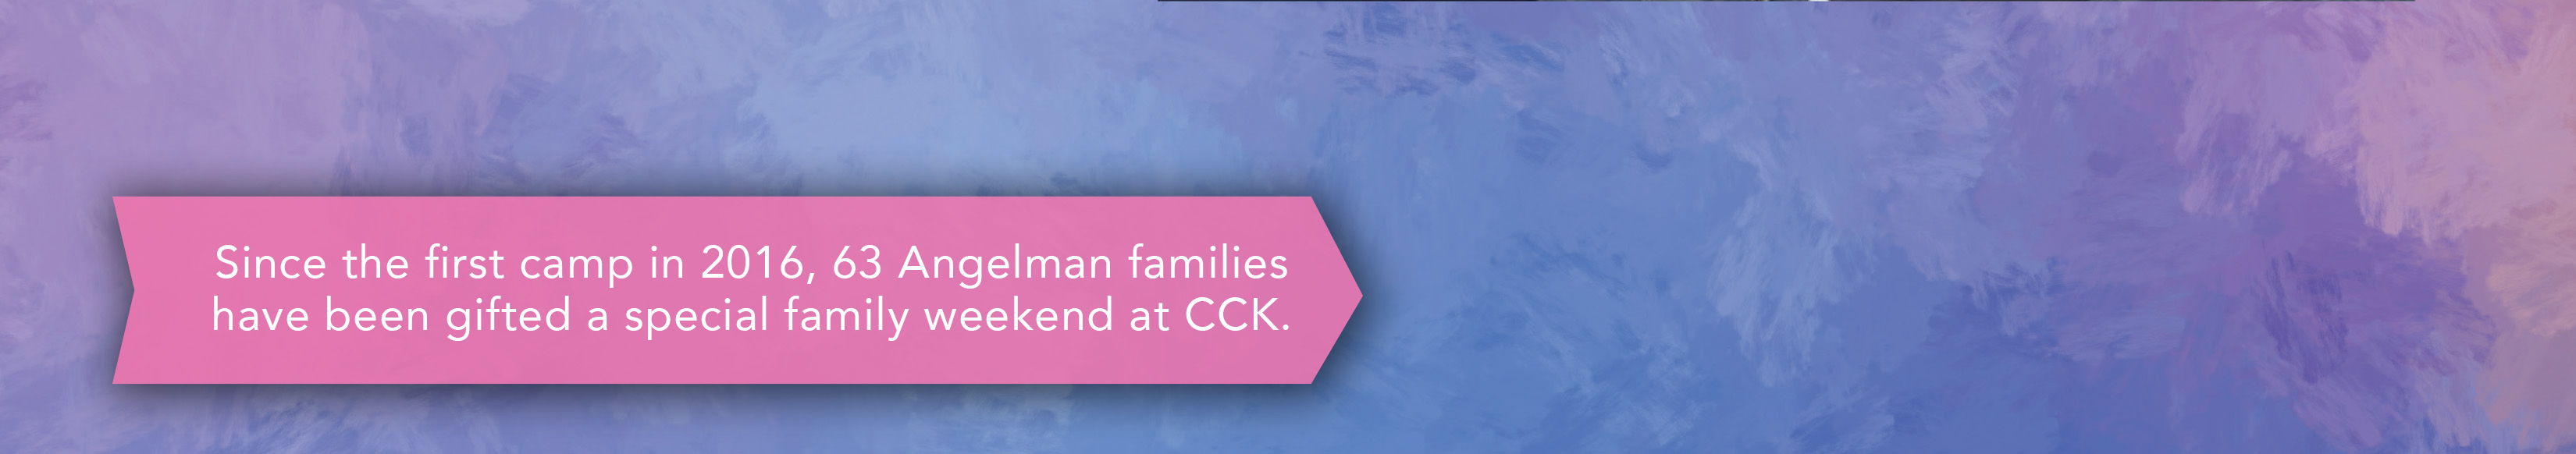 Since 2016, 63 Angelman families have been gifted a special family weekend at CCK.